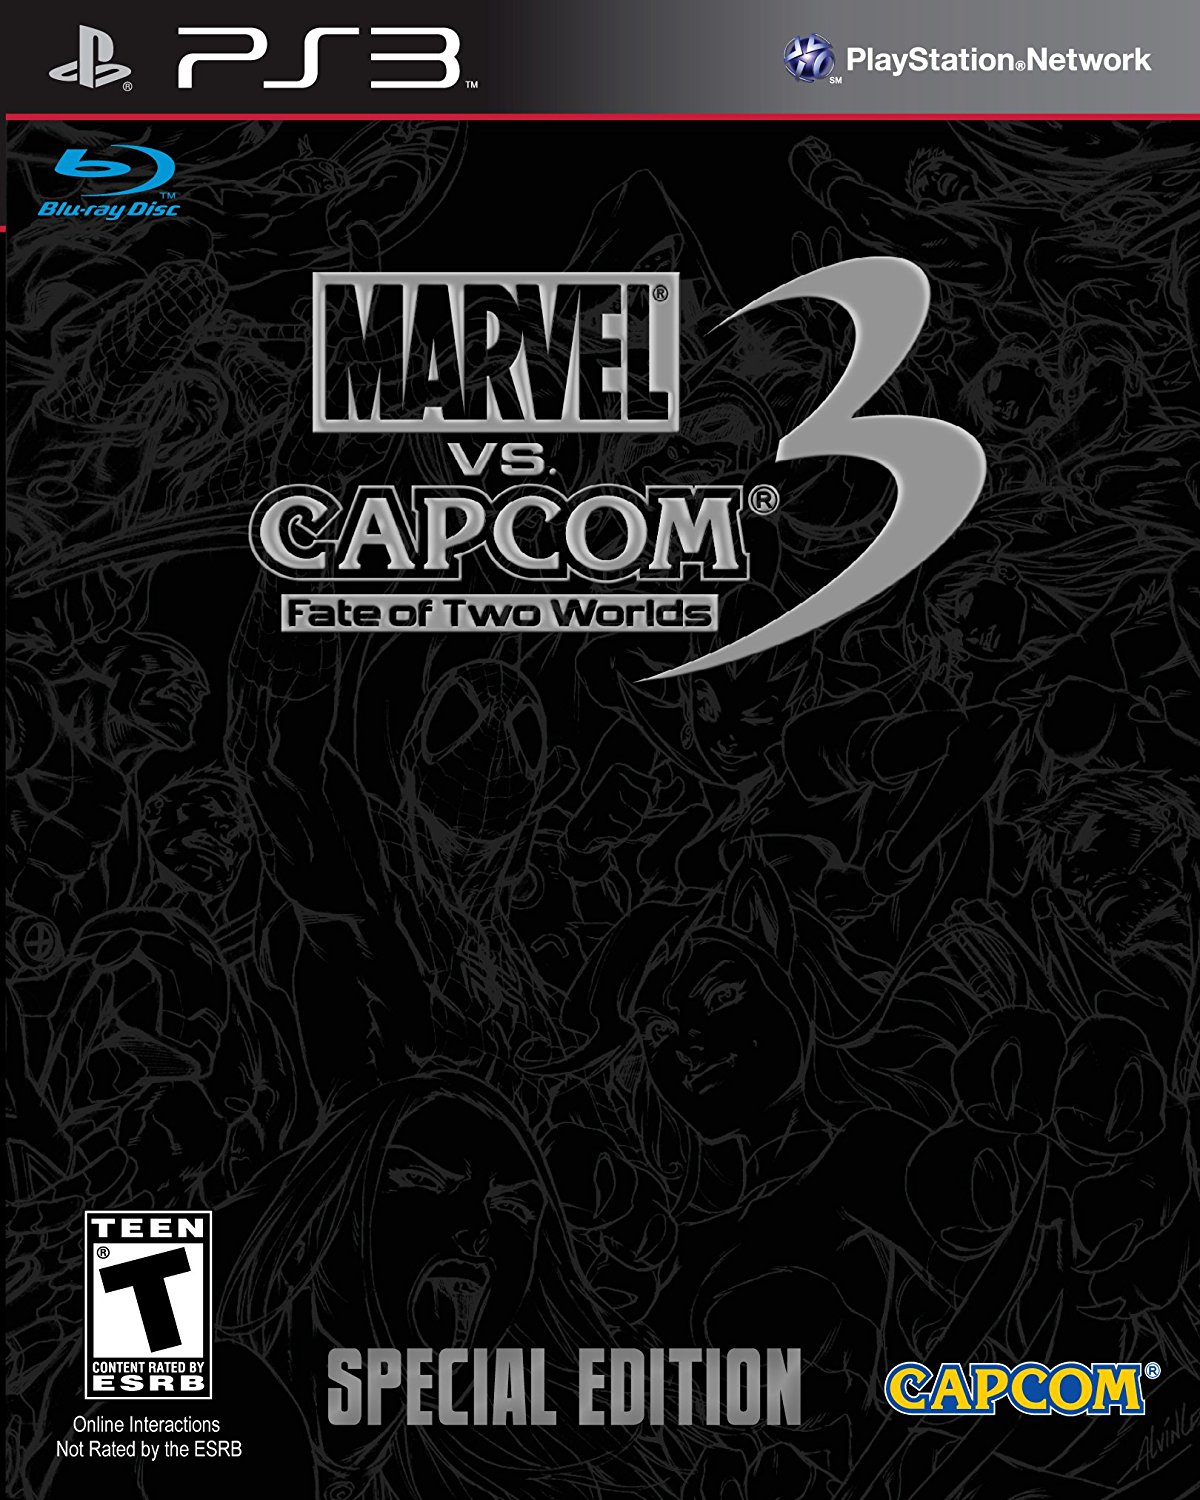 Marvel vs Capcom 3: Fate of Two Worlds Special Edition